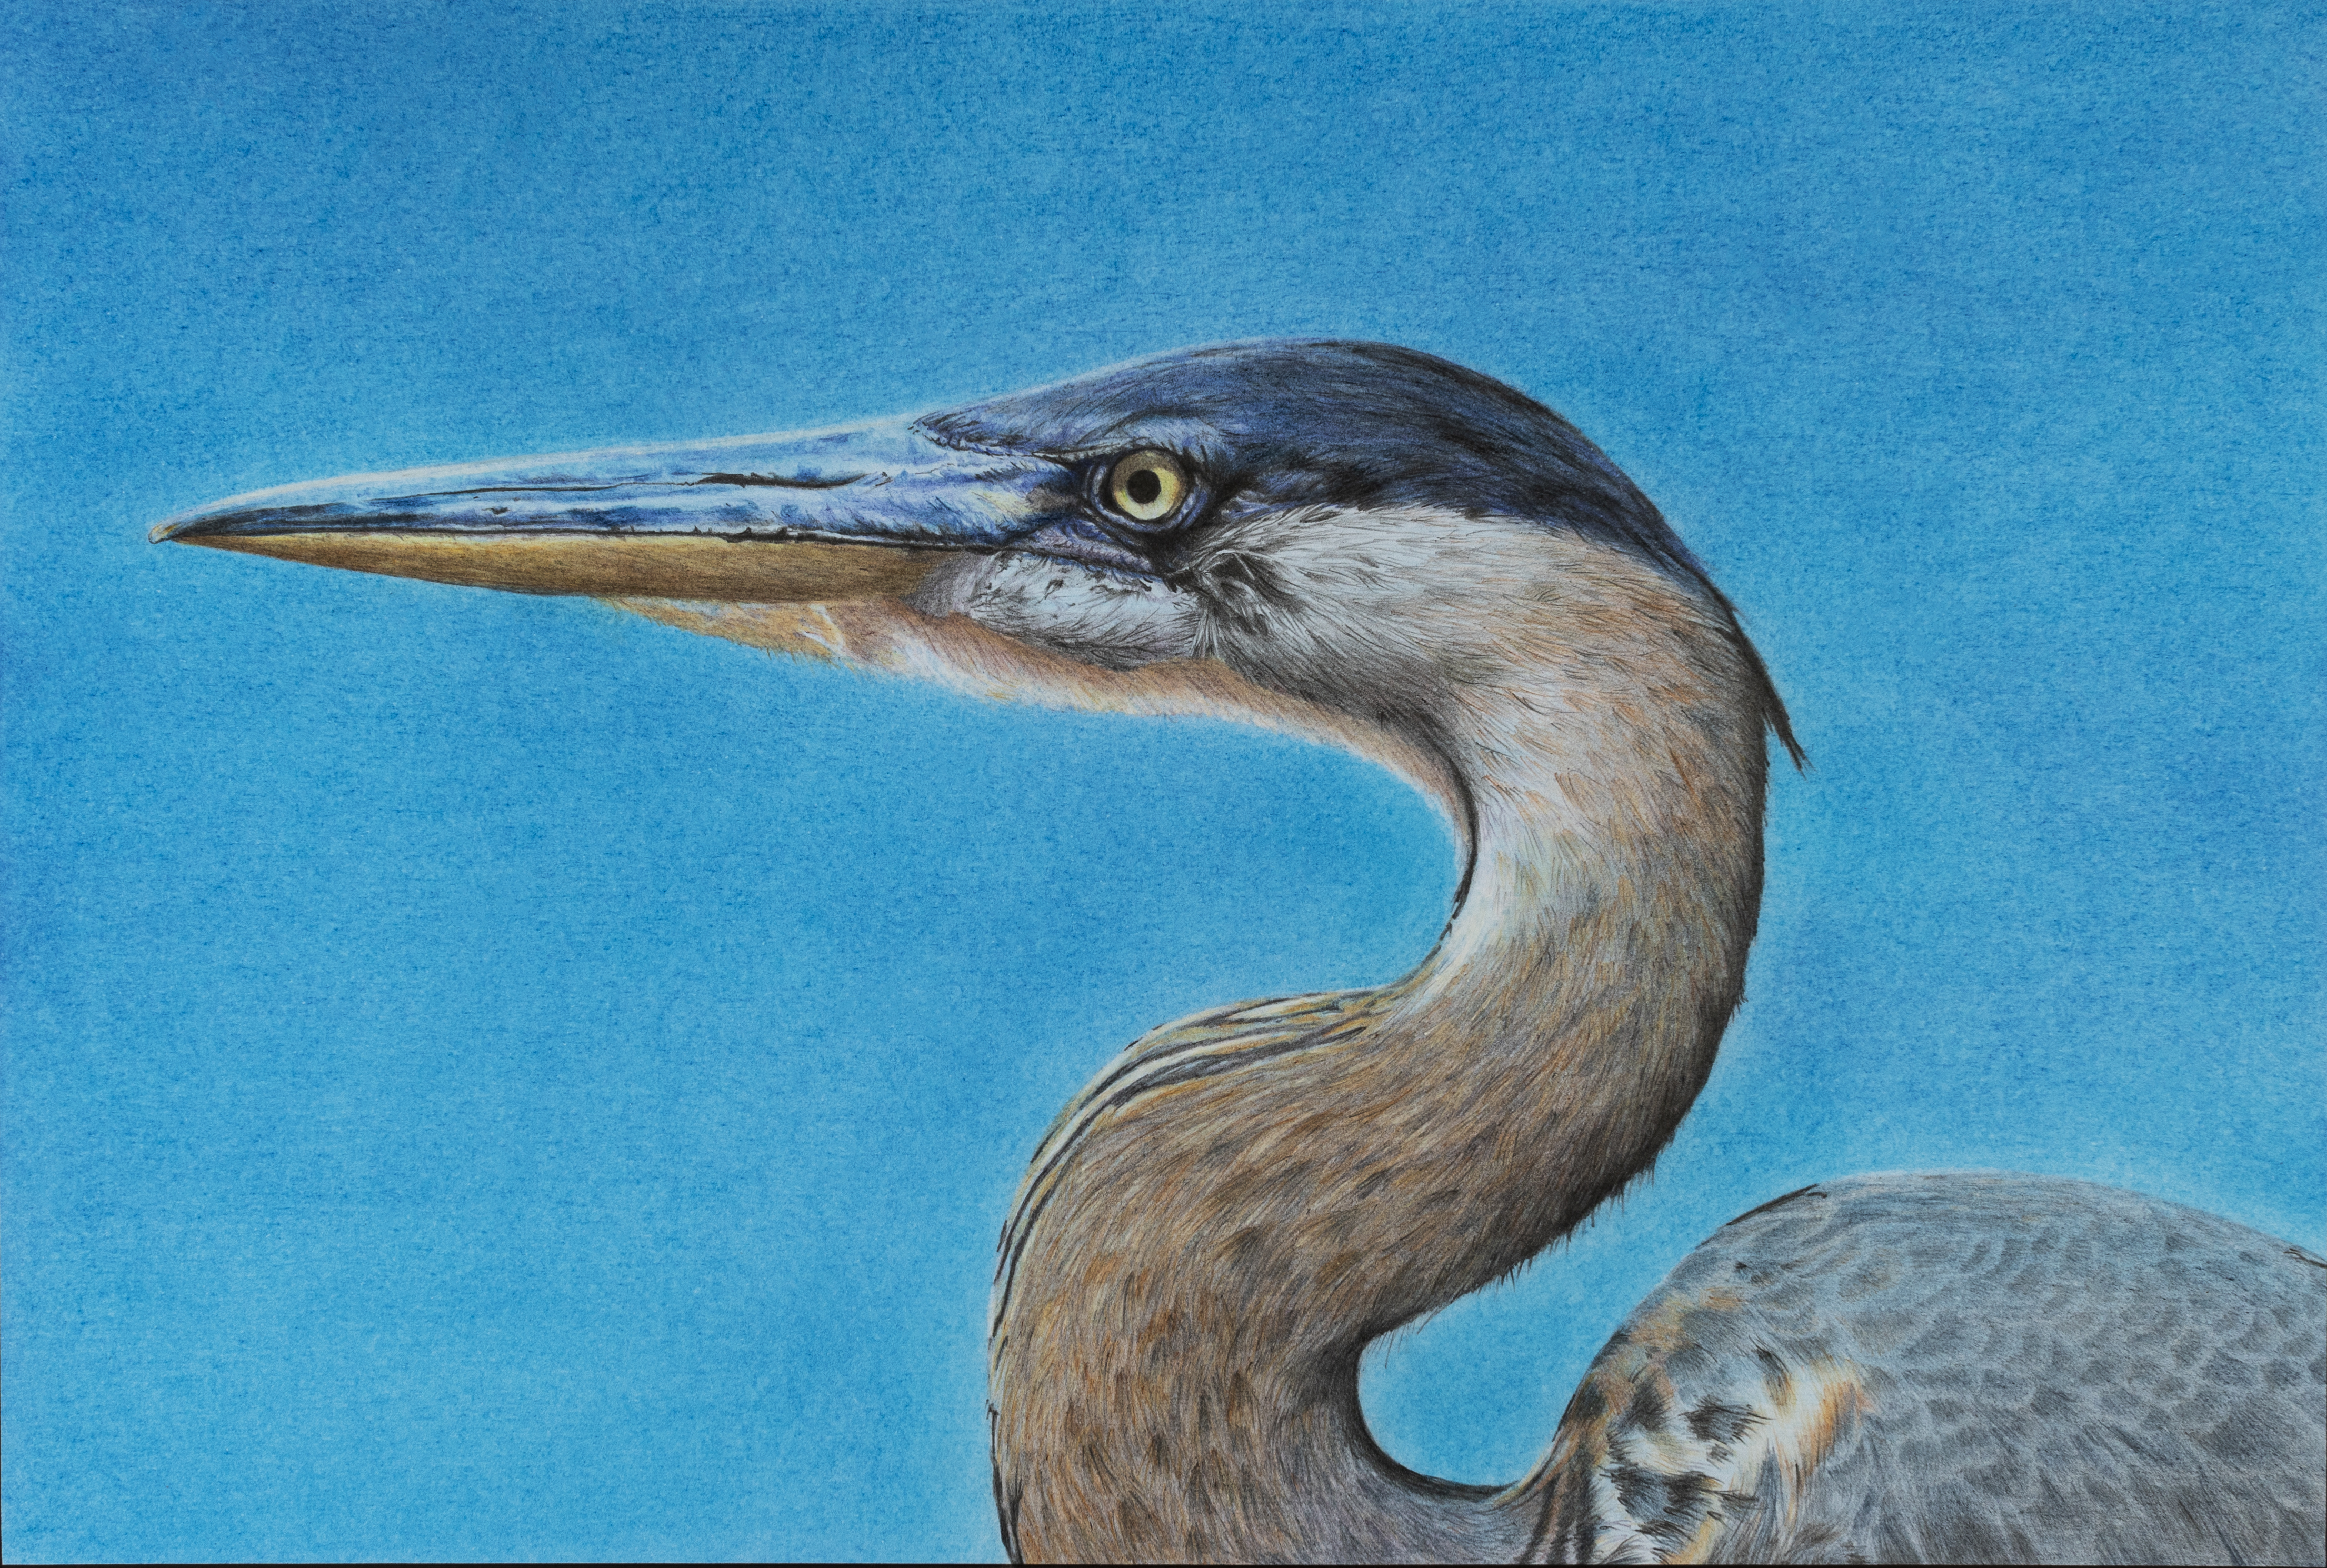 Great Blue Heron illustration